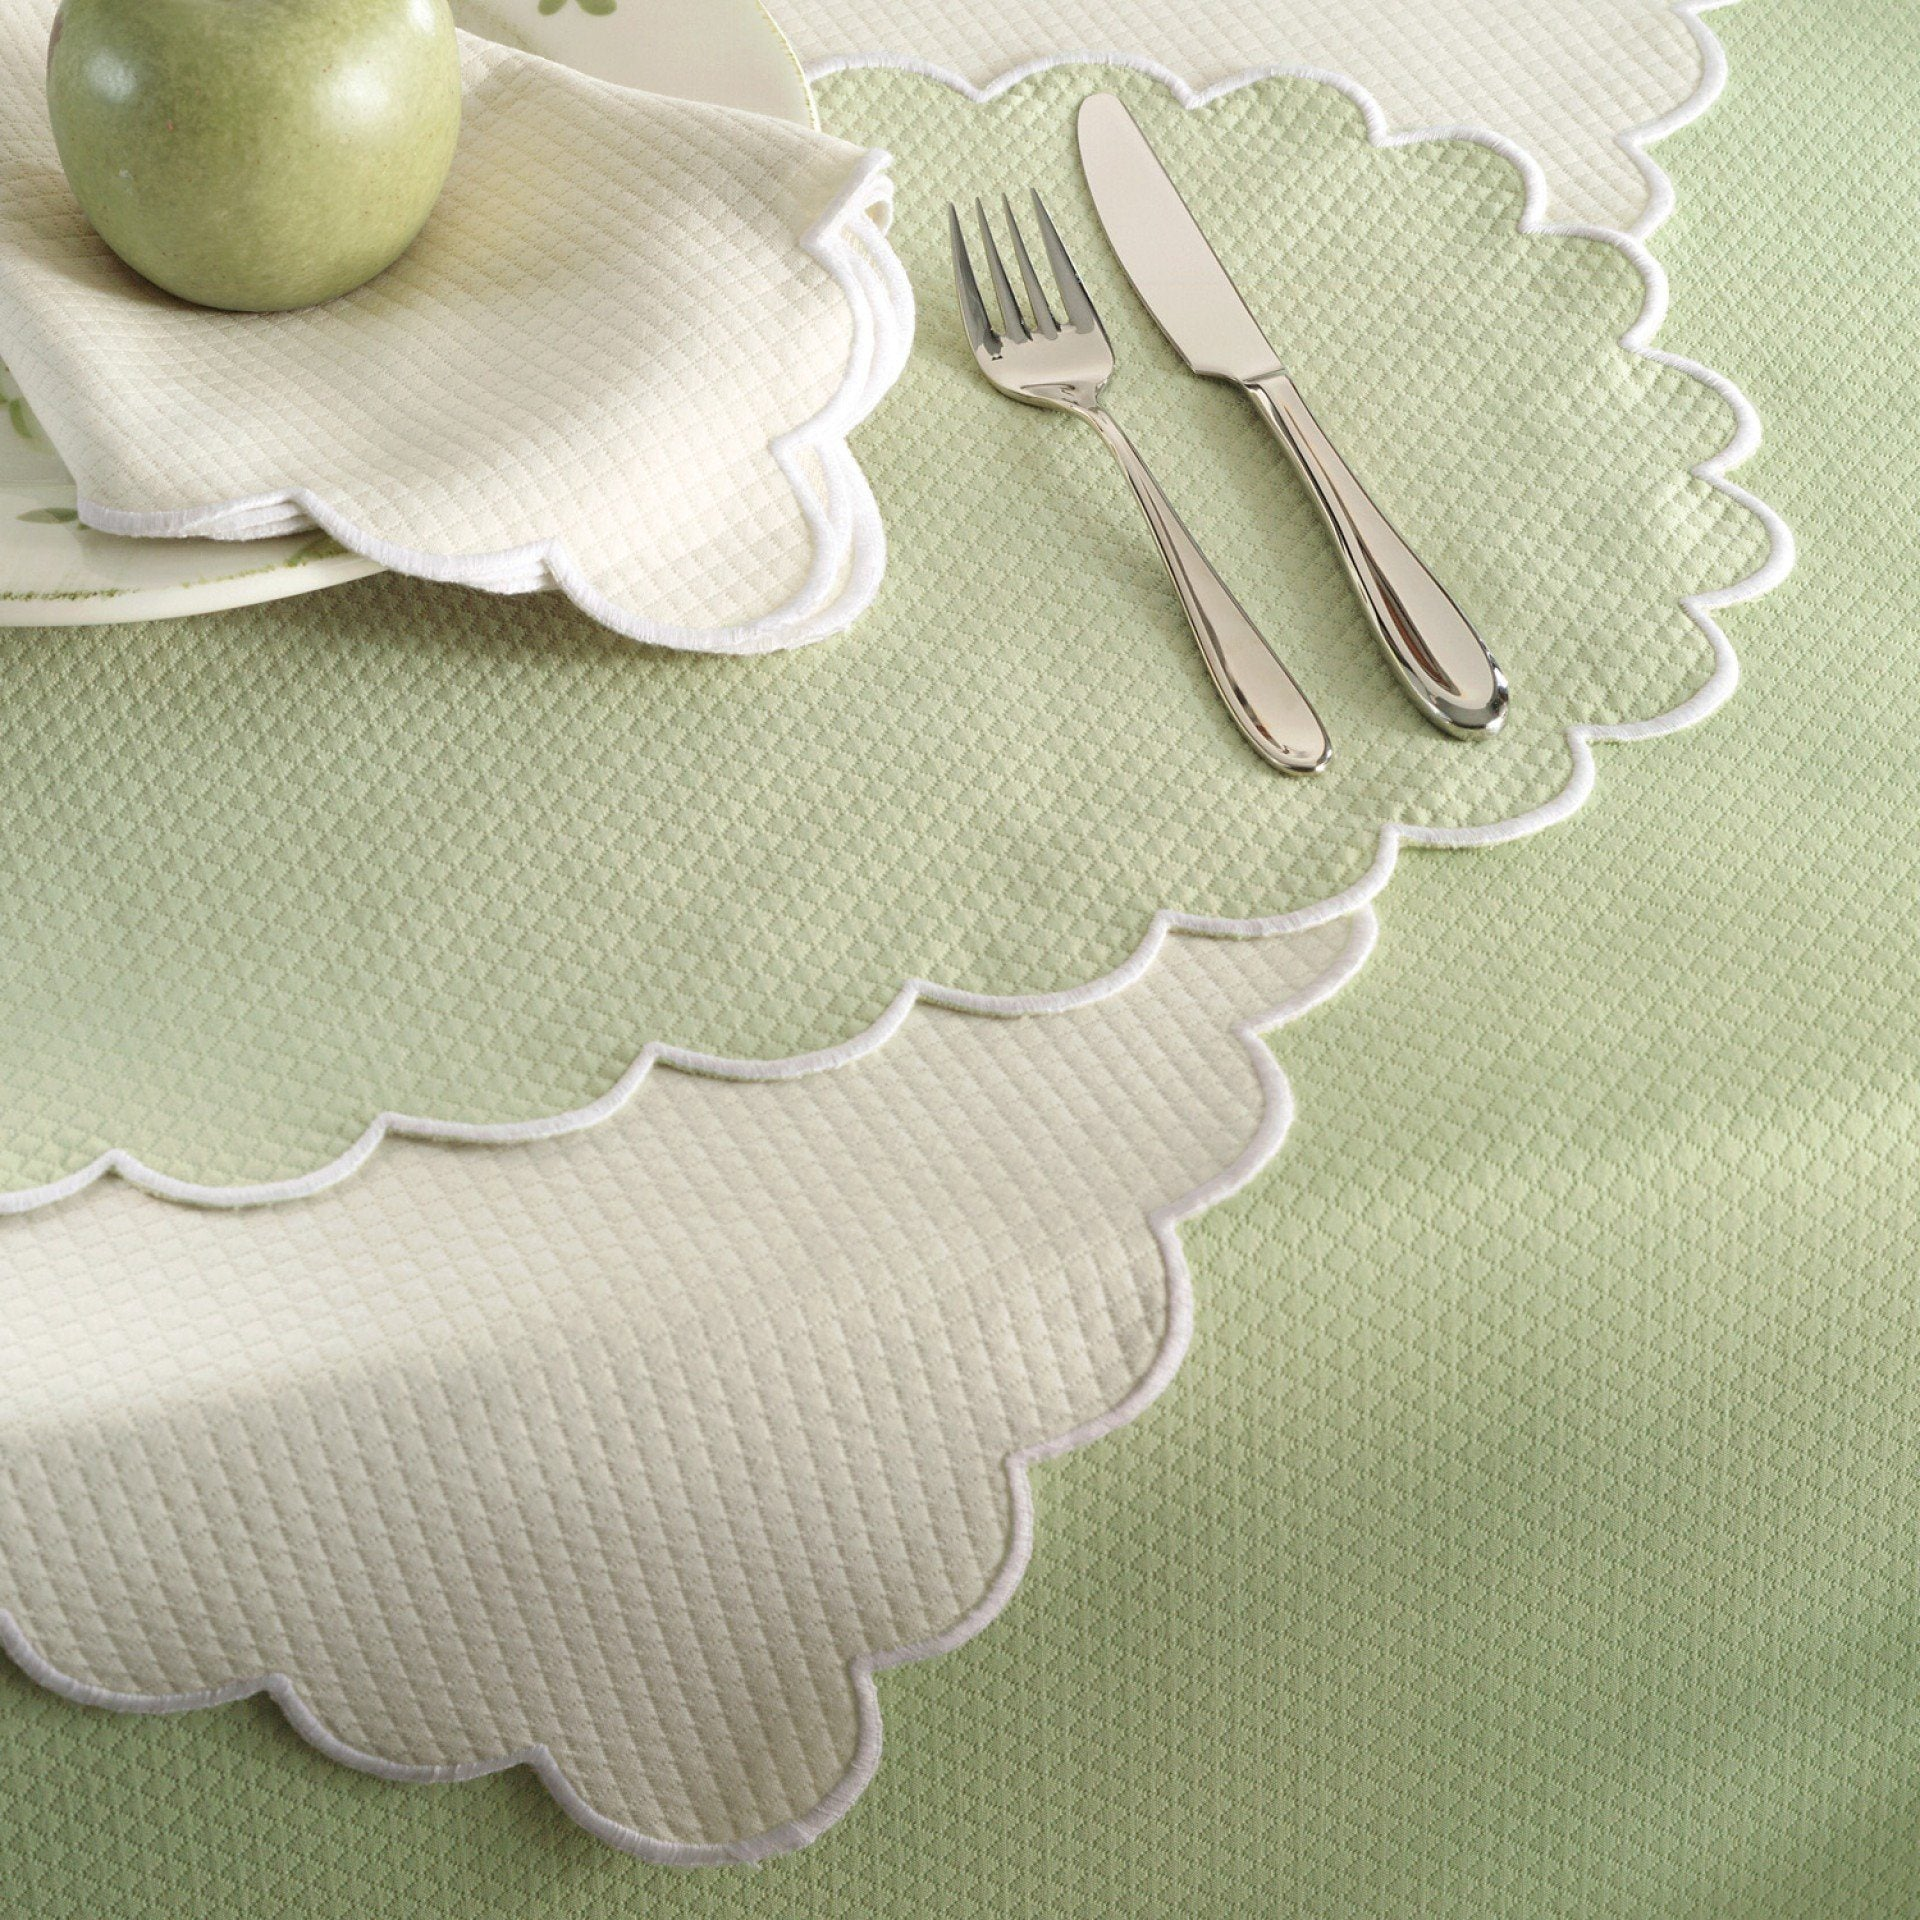 Fig Linens - Savannah Gardens by Matouk - Placemats and Napkins